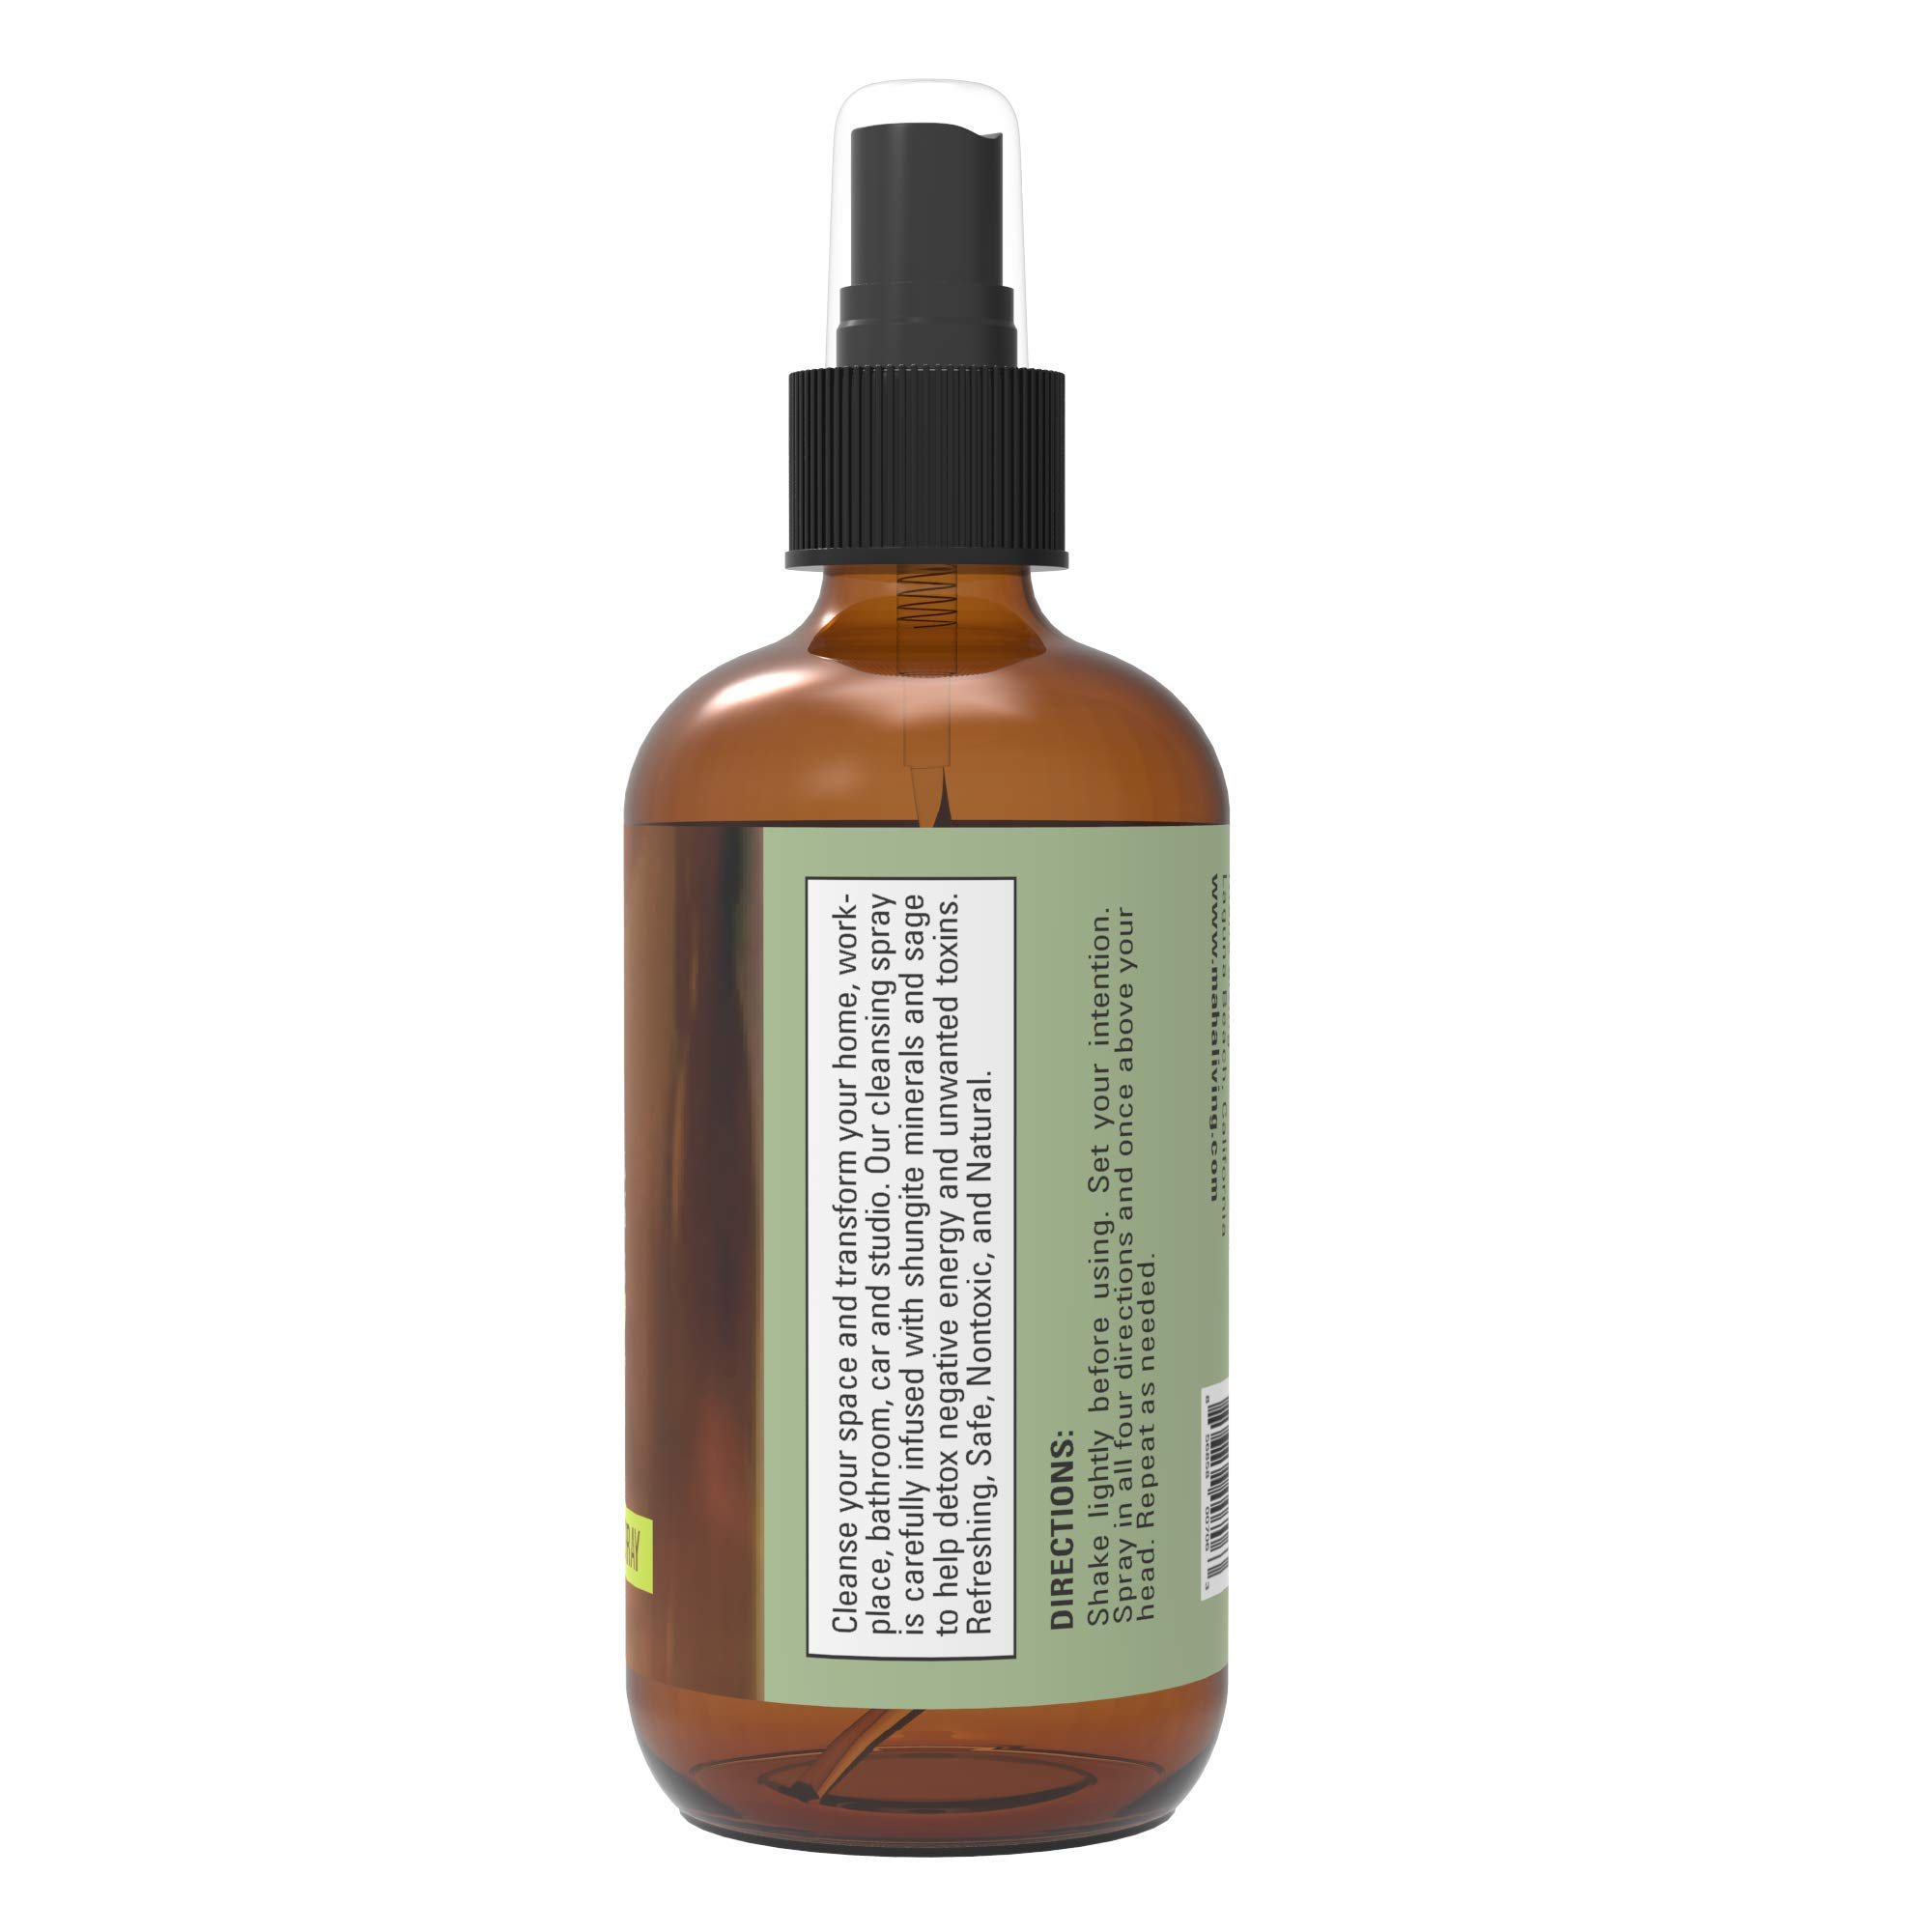 Sage Spray - Natural Essential Oil Spray for Cleansing Your Home, Office, or Linens - Crystal Infused to Help Purify And Restore - Perfect as an Air Freshener, Pillow Spray, or Aromatic Mist (4 oz) by Maha Living (Image #3)